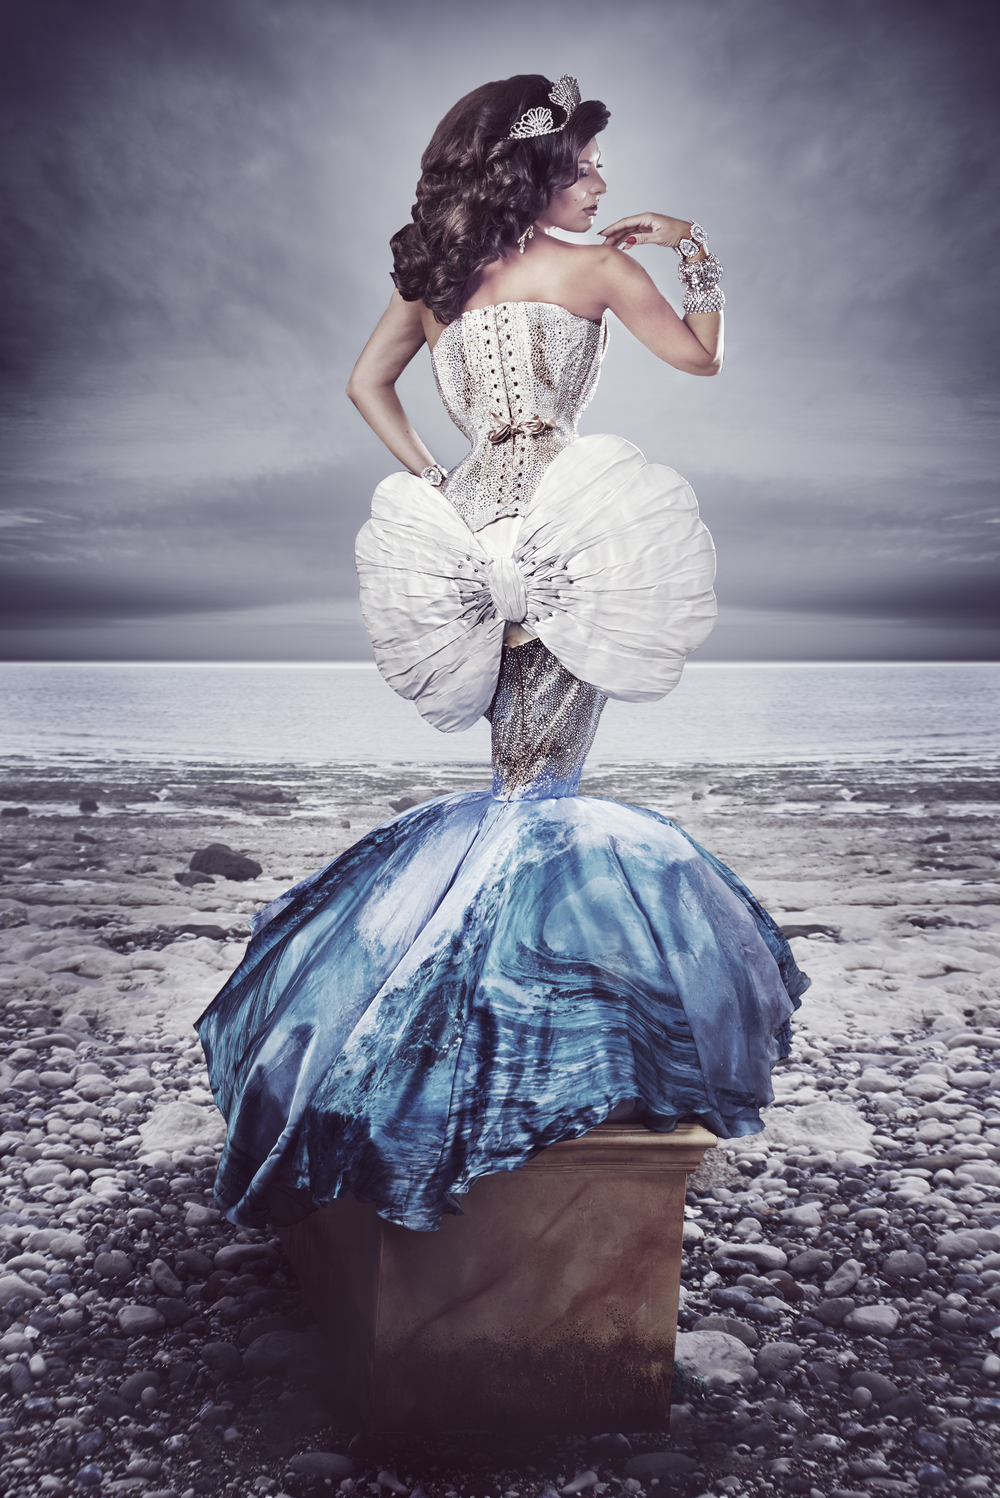 MODEL: Immodesty Blaize  HAIR: Robin Palowski  PHOTOGRAPHY & PHOTOSHOP: Coco Rococo  DRESS AND CAPE: The Whitechapel Workhouse